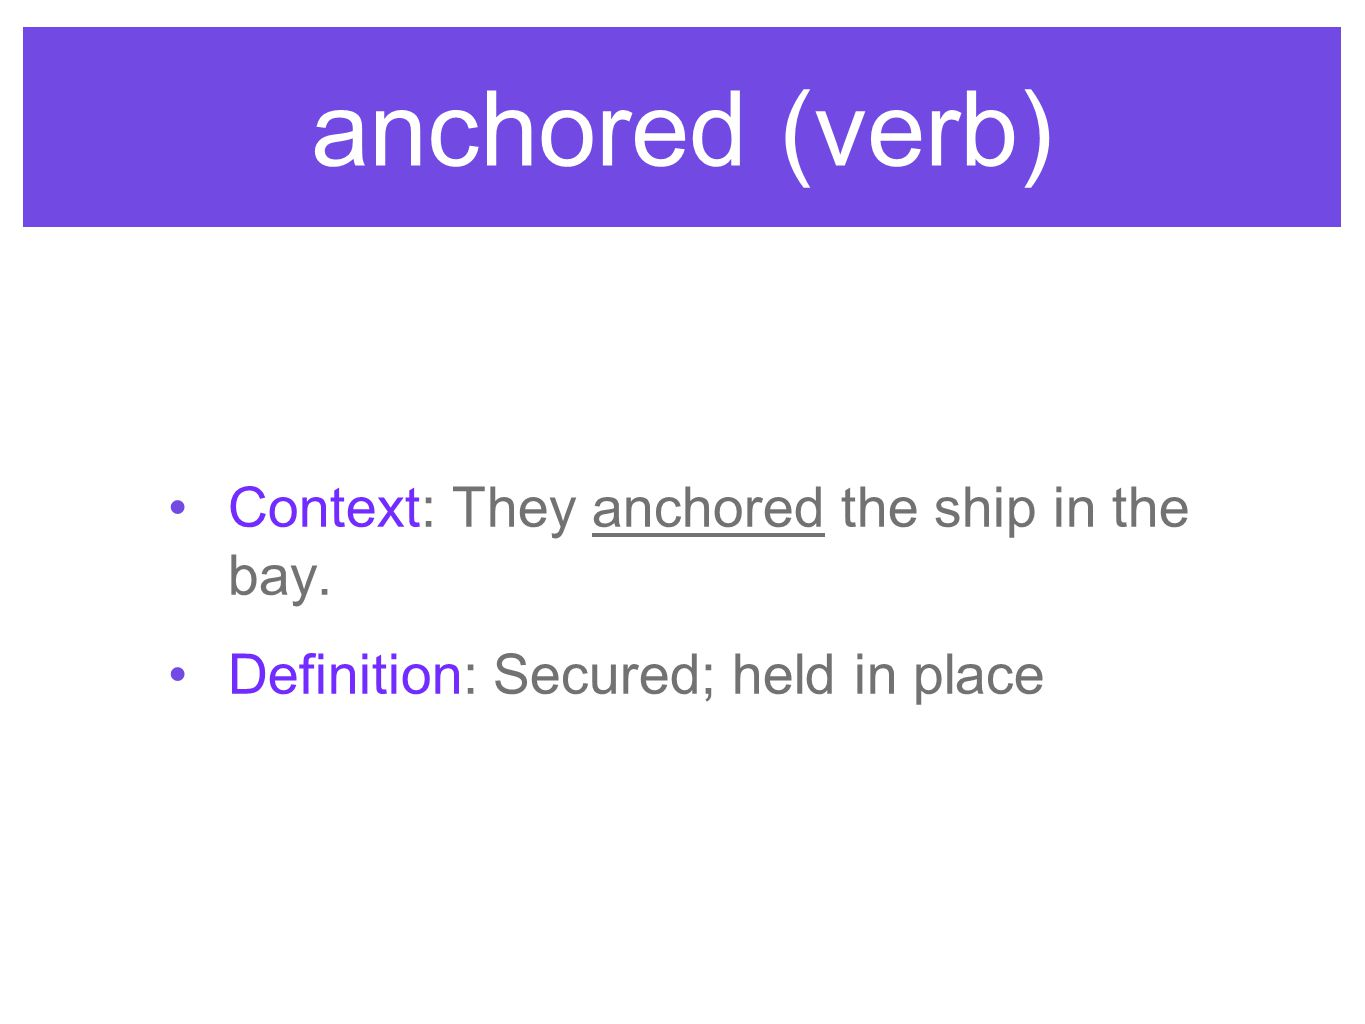 anchored (verb) Context: They anchored the ship in the bay. Definition: Secured; held in place